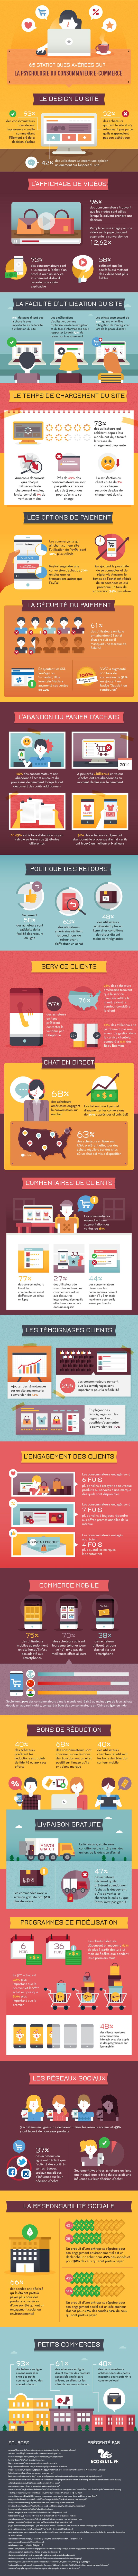 Baby-boomers datant des sites